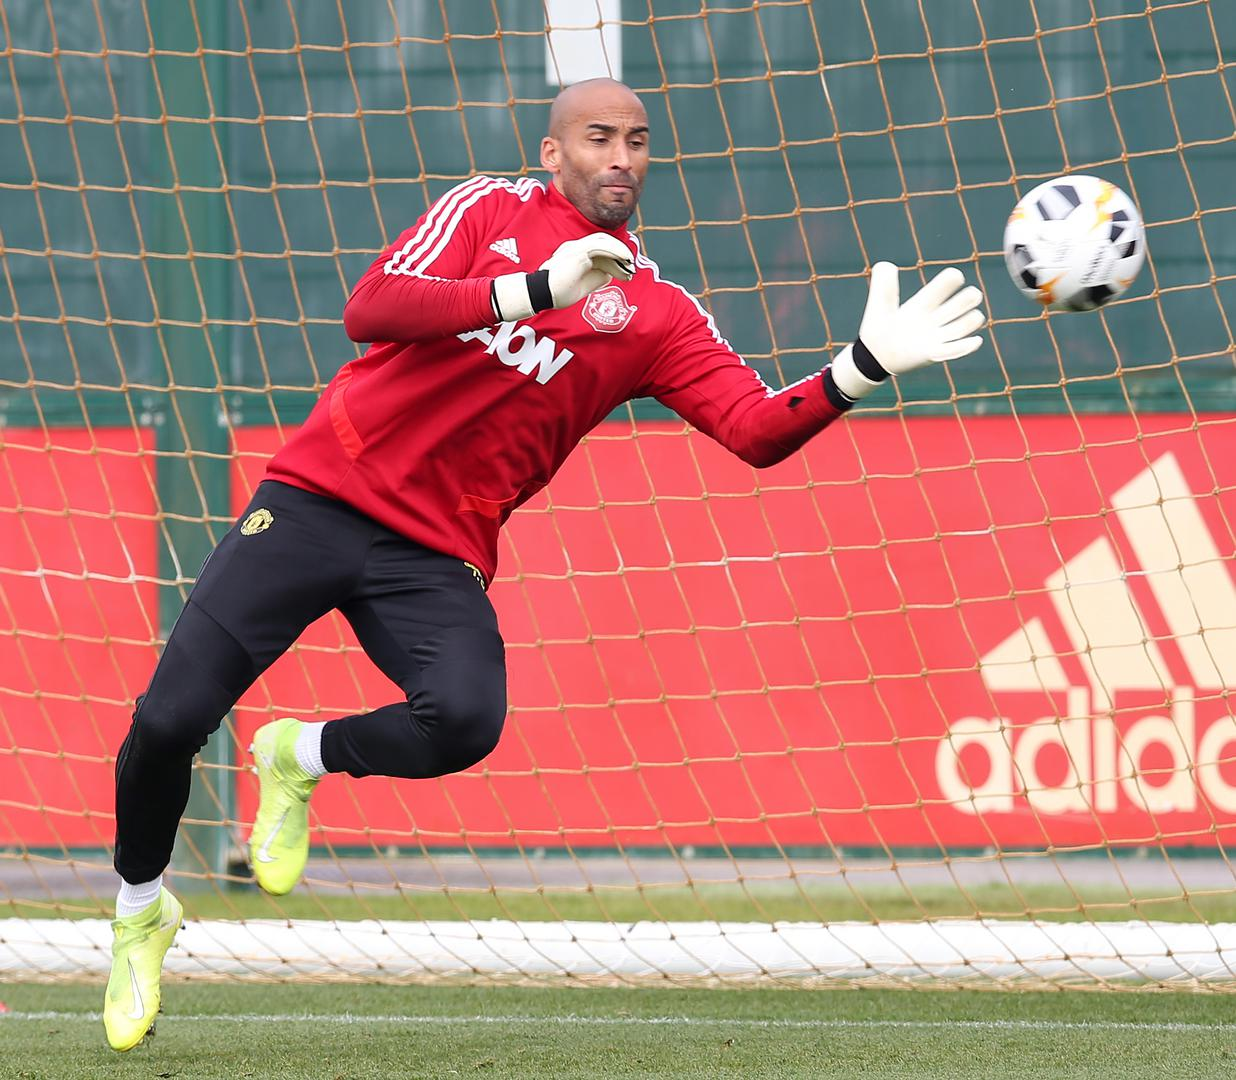 Lee Grant saves a shot in training.